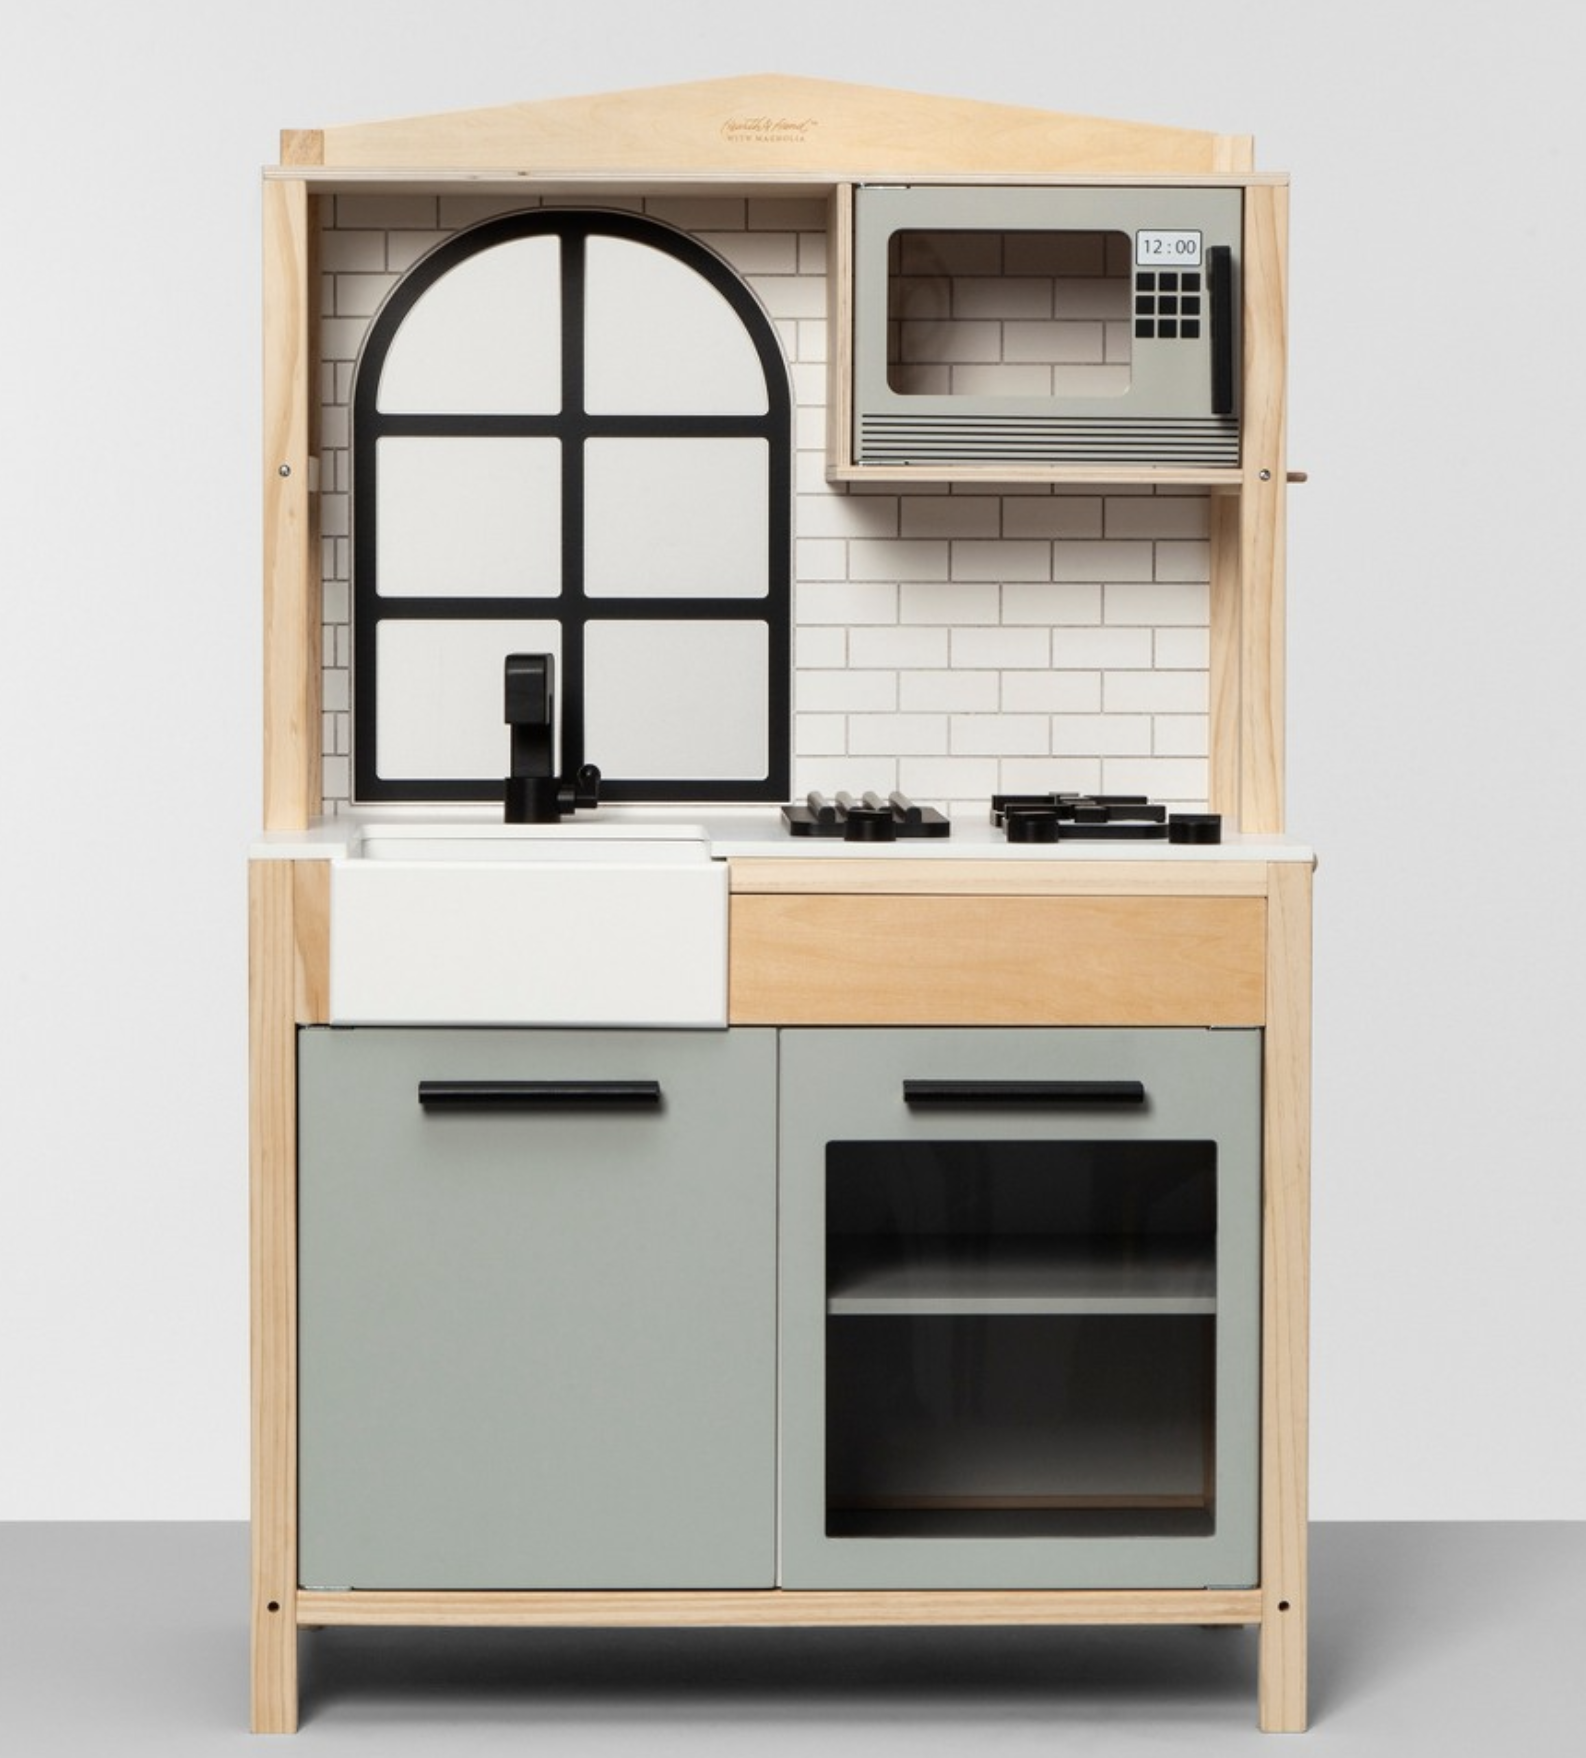 Toy Kitchen - Hearth & Hand with Magnolia